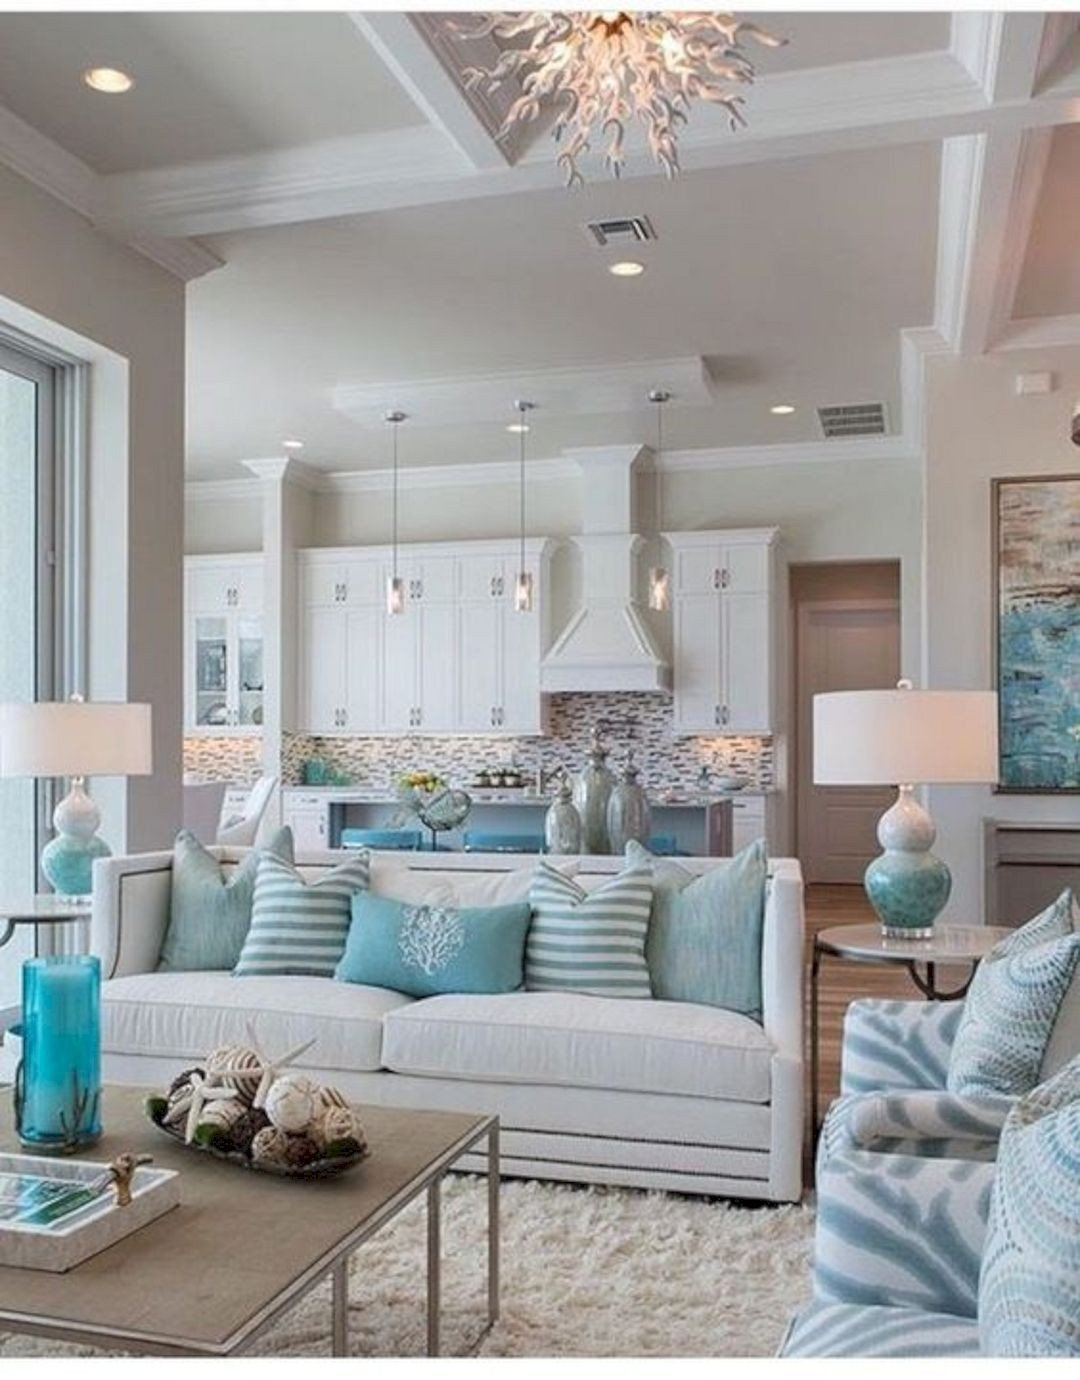 Beach House Living Room Decor 16 Refreshing Home Decoration Ideas to Bring Out Coastal